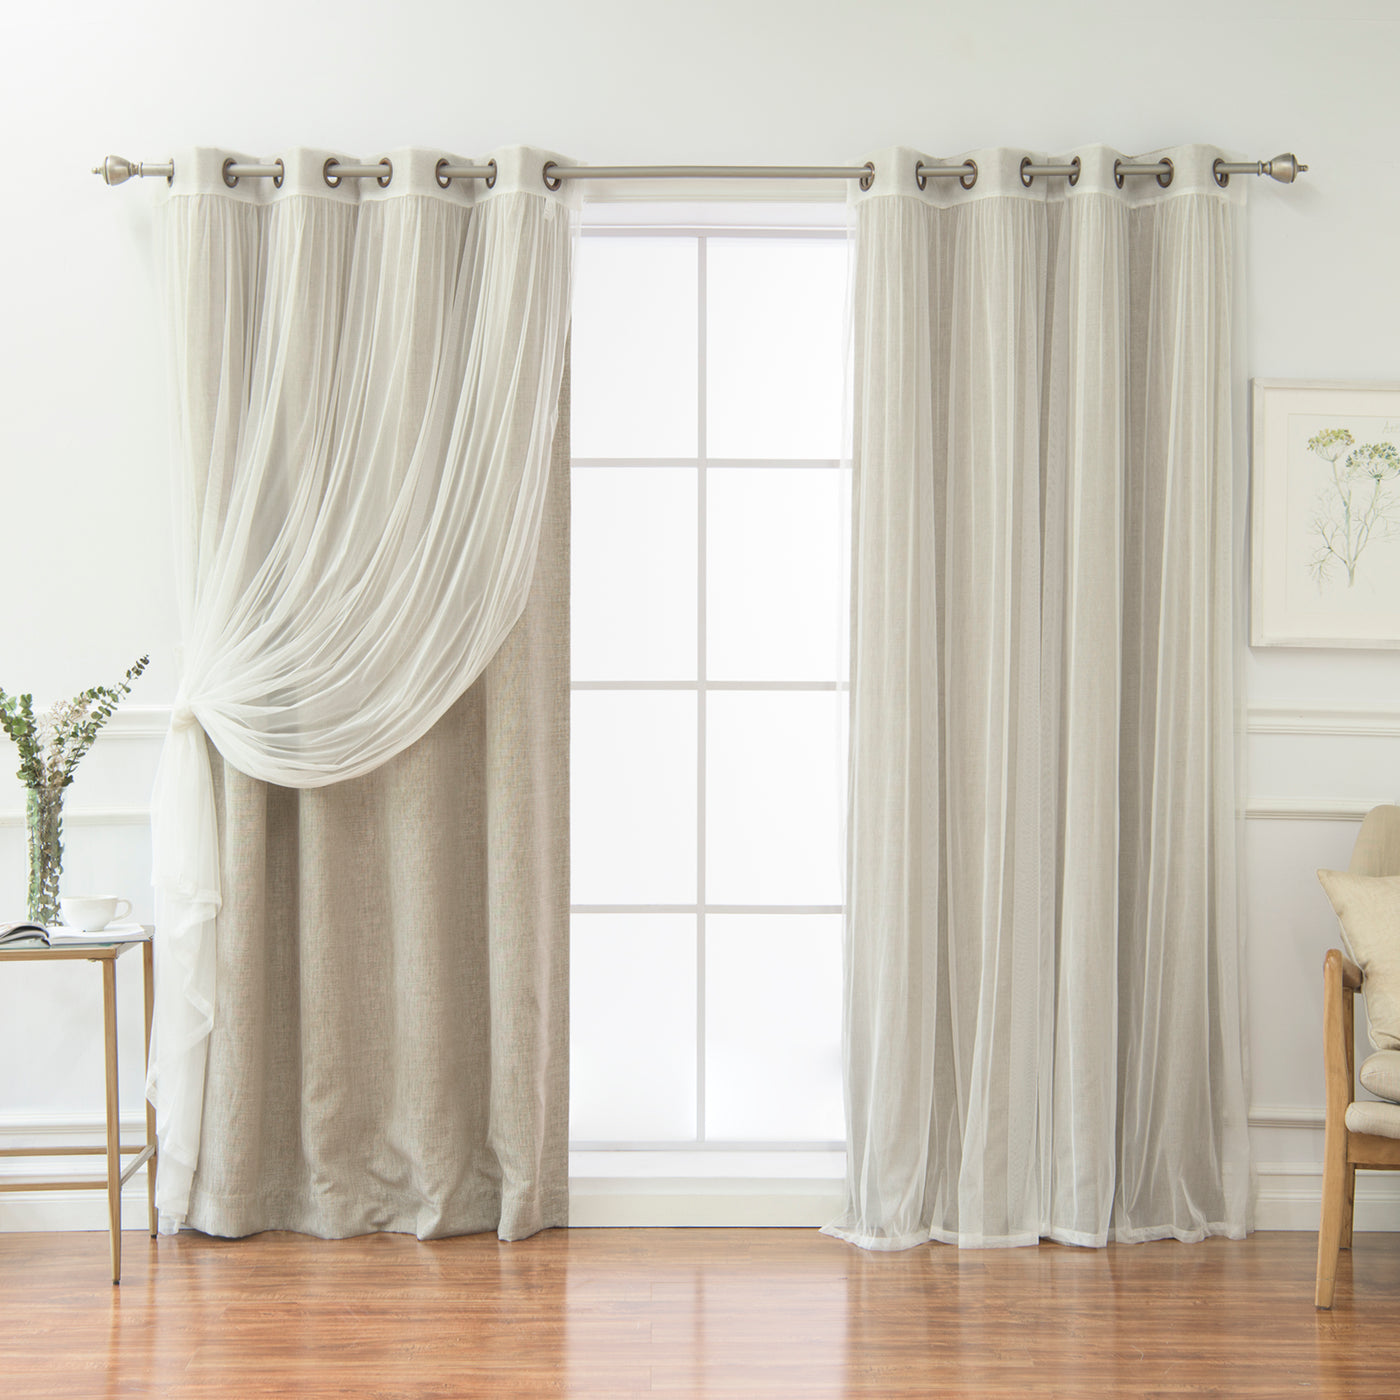 uMIXm Tulle & Heathered Room Darkening Curtains